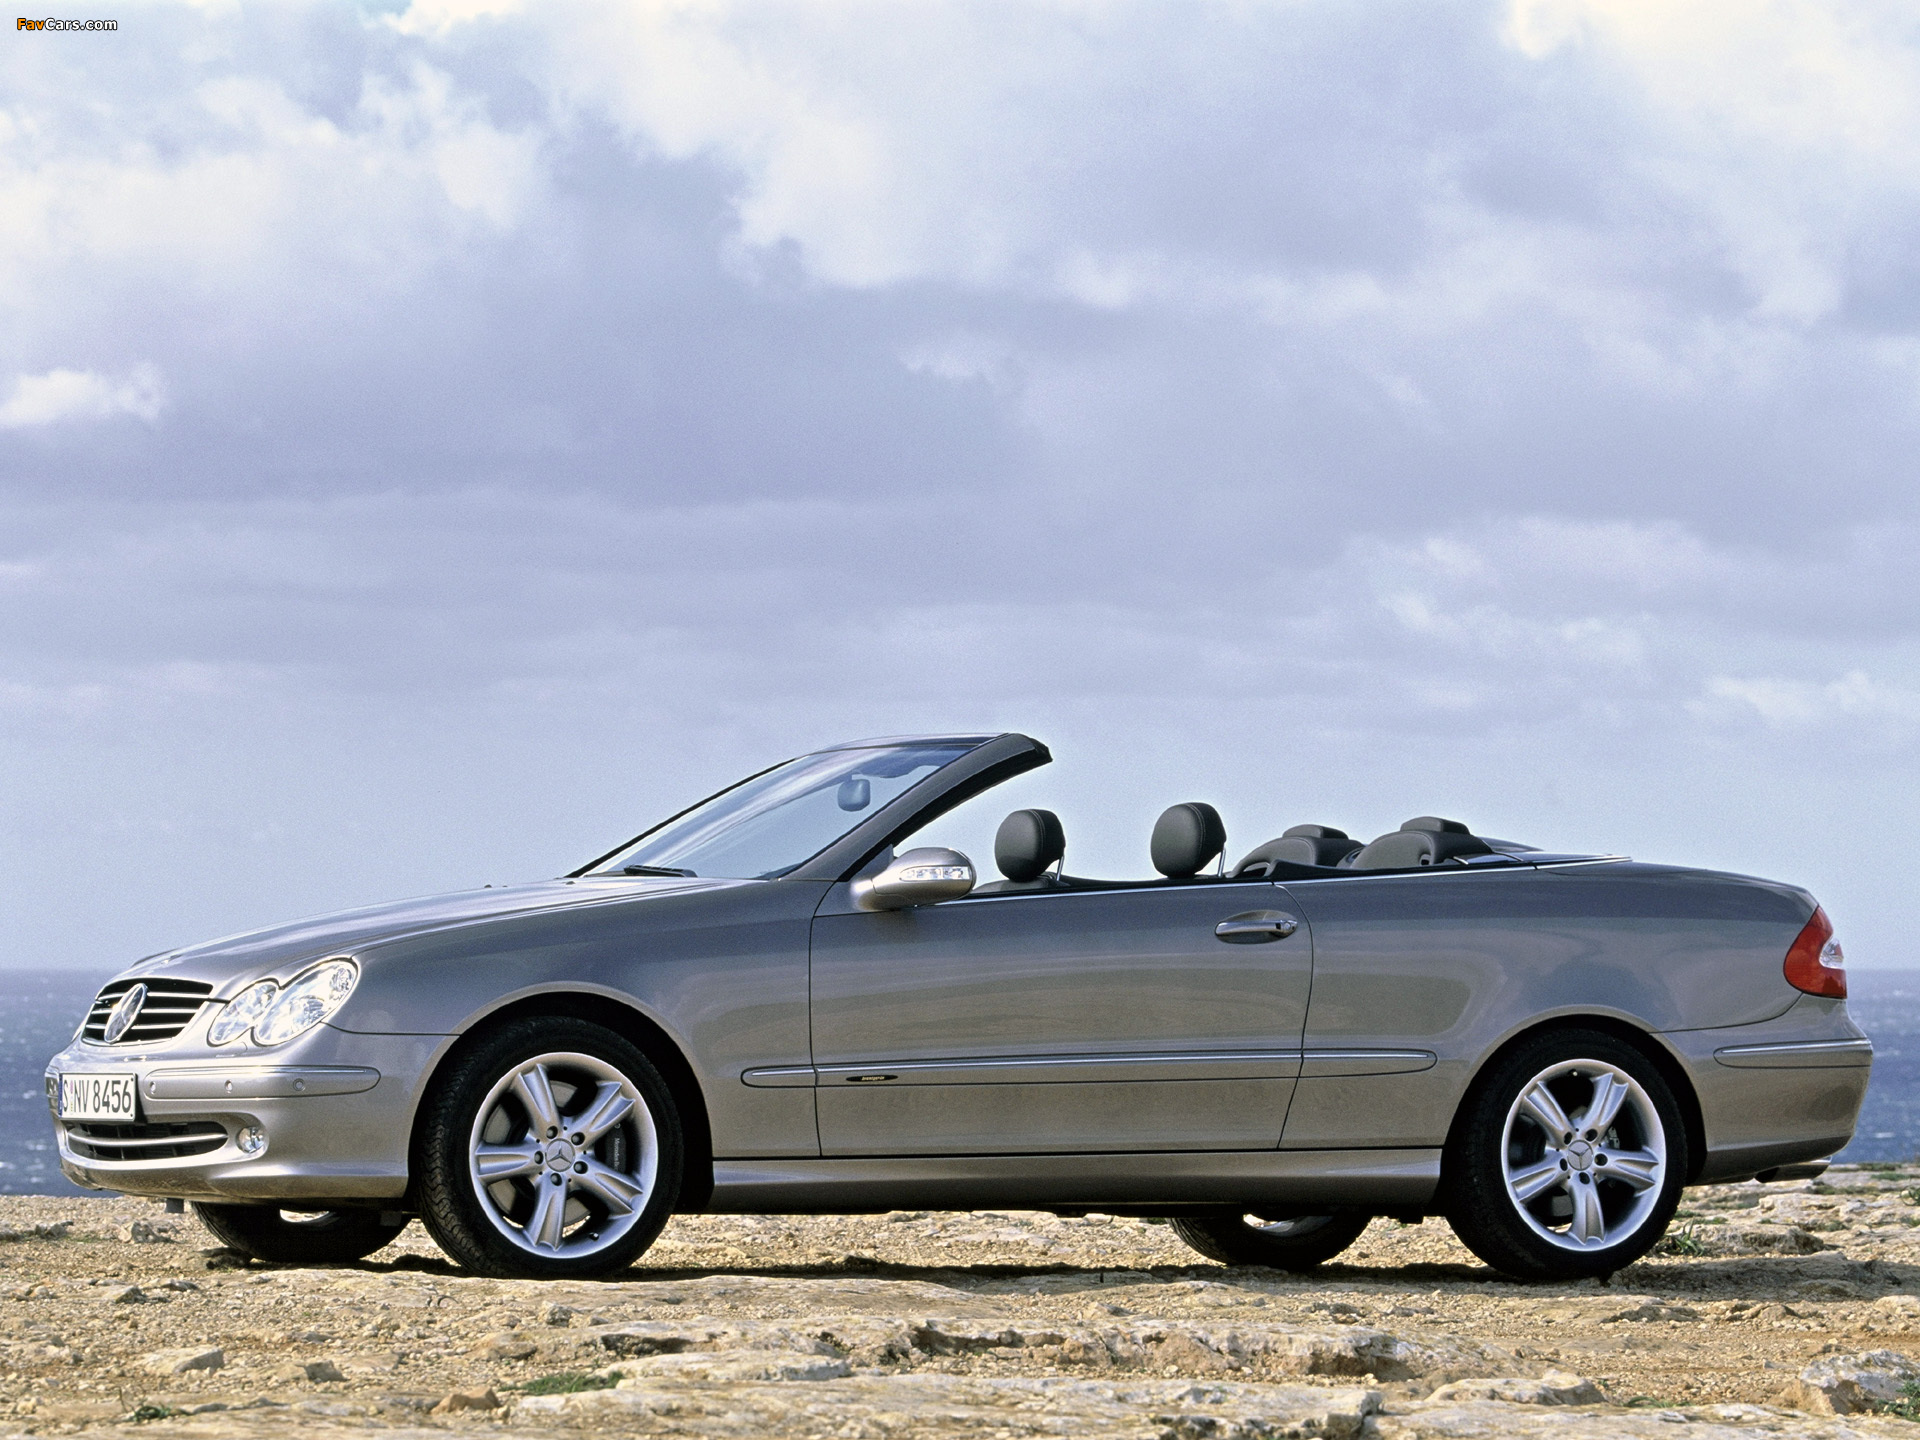 Photos Of Mercedes Benz Clk 500 Cabrio A209 2003 05